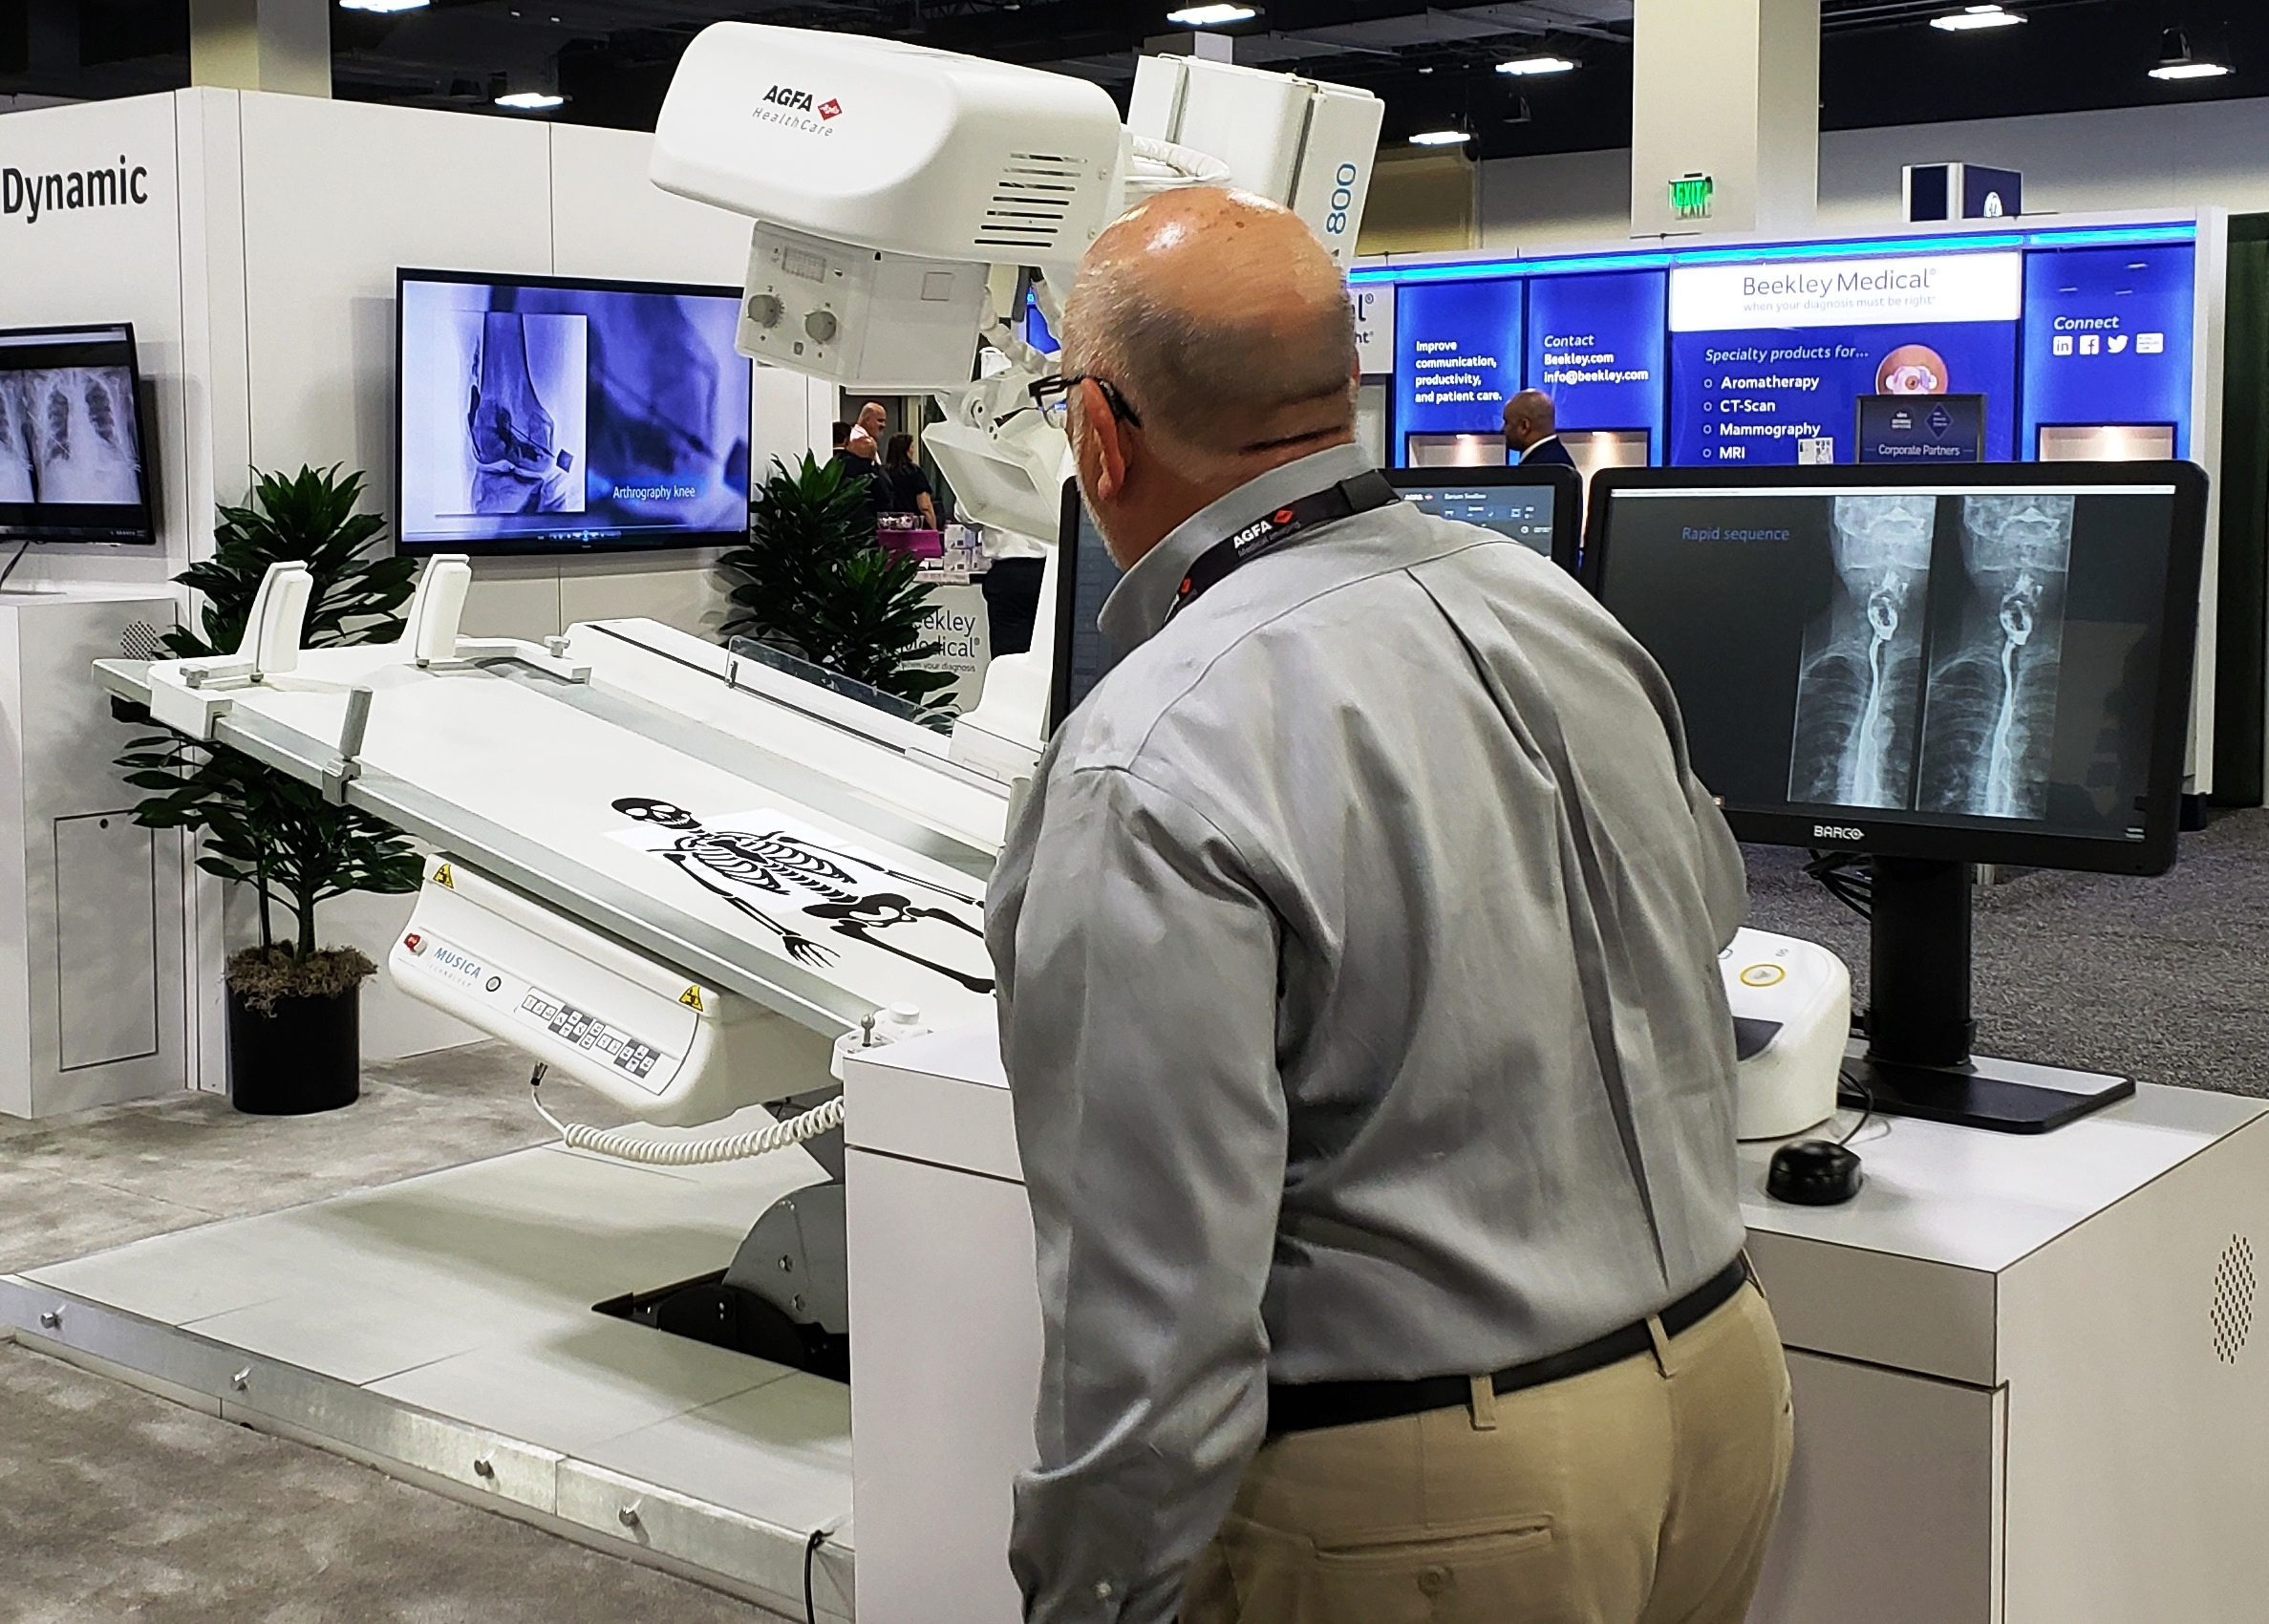 """At the annual meeting of the AHRA, Agfa Healthcare demonstrated a full-scale model of its DR 800, presenting the unit as a """"game changer"""" for its multifunctionality."""